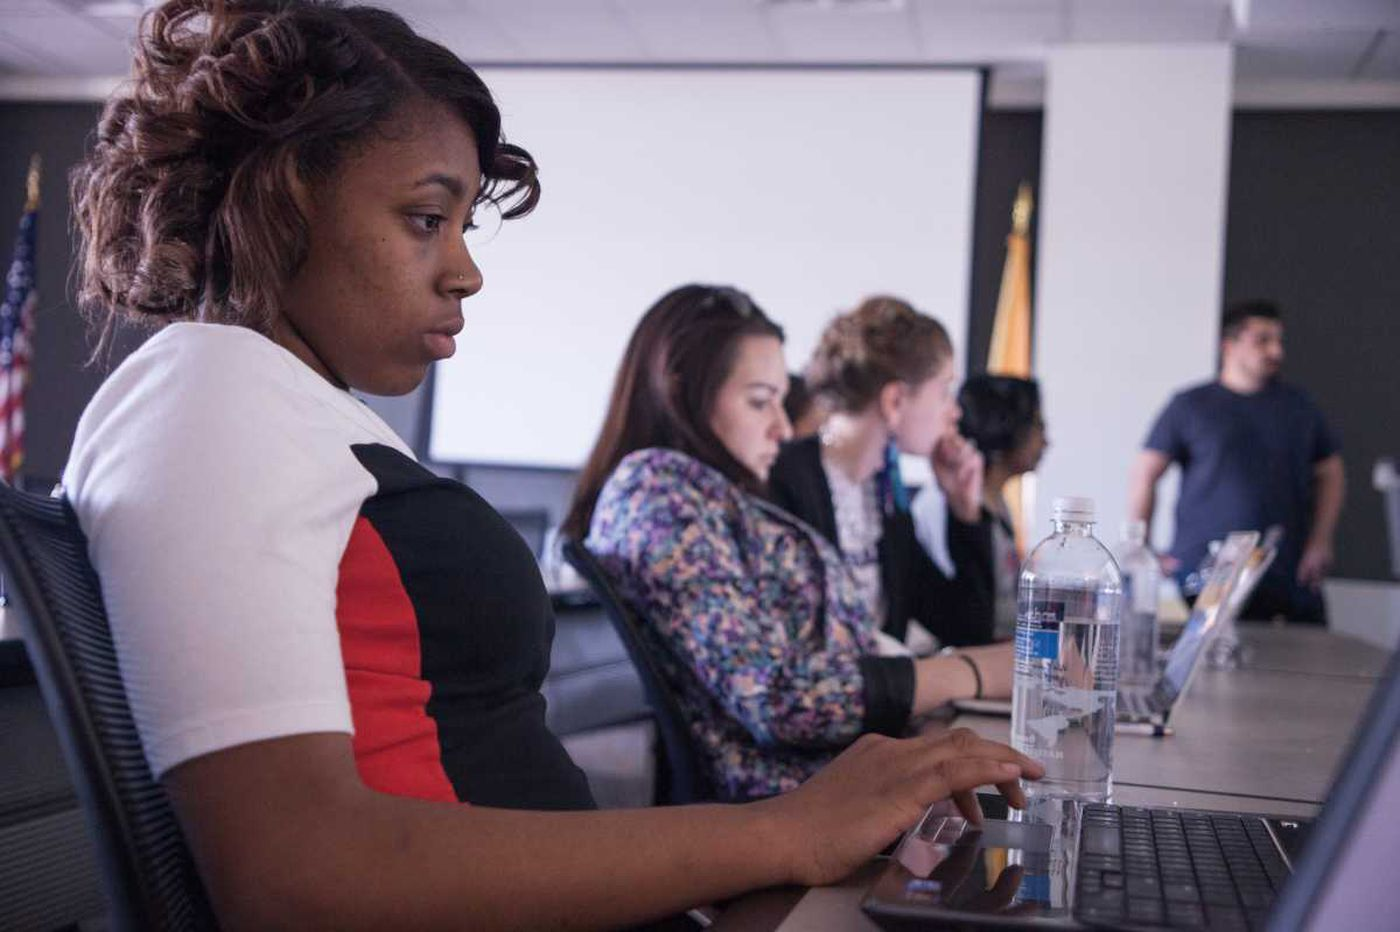 Wow! Philly ranks second in tech job growth rate; numbers still low